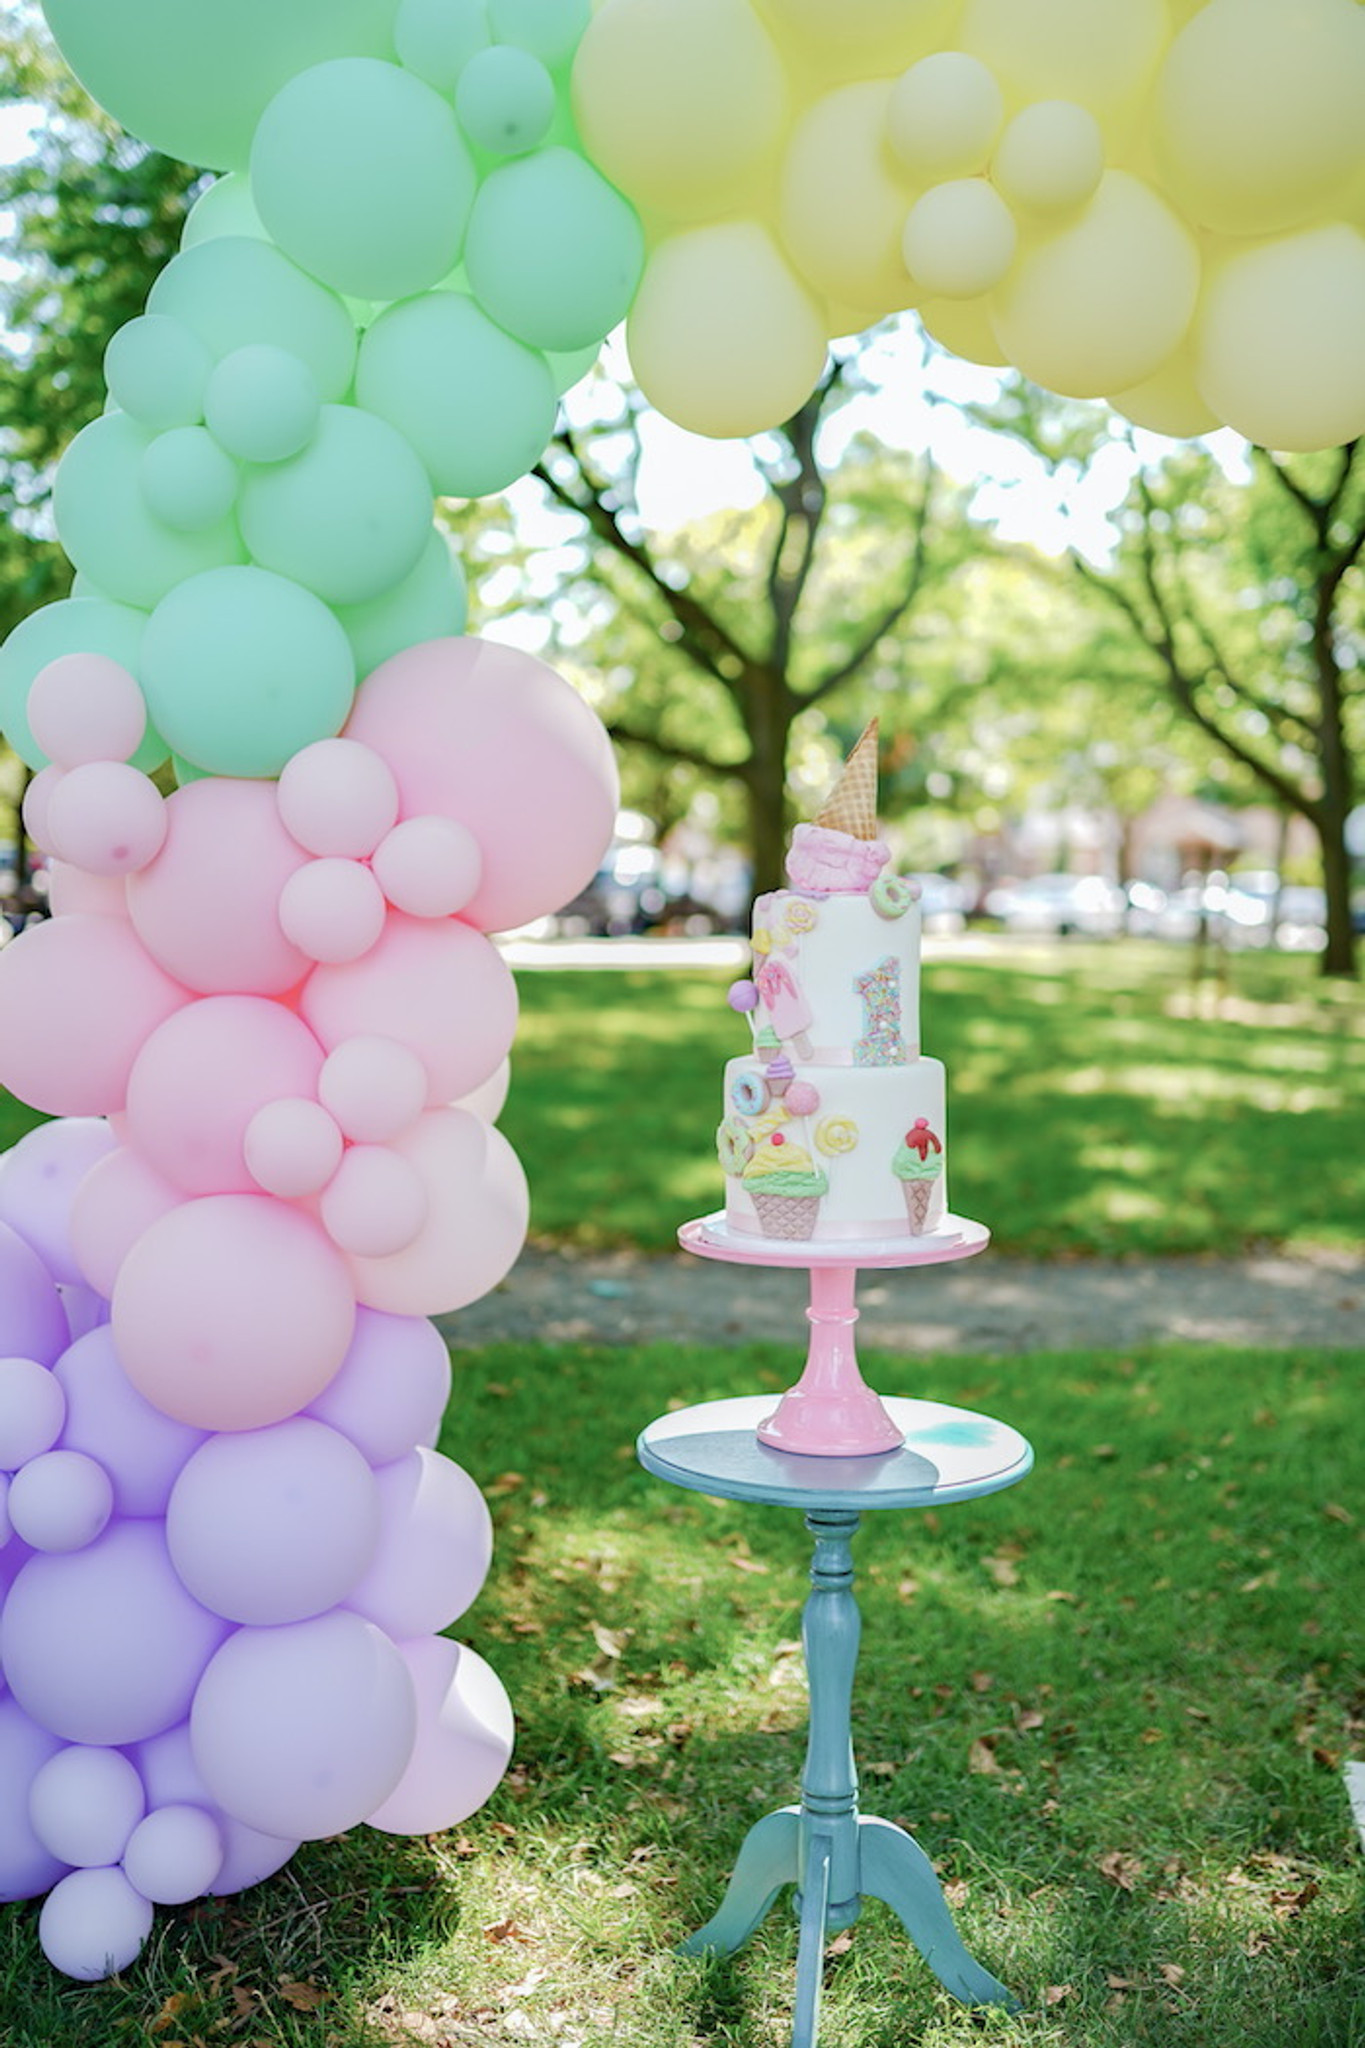 Ice Cream Party Theme-this month's featured 1st birthday party